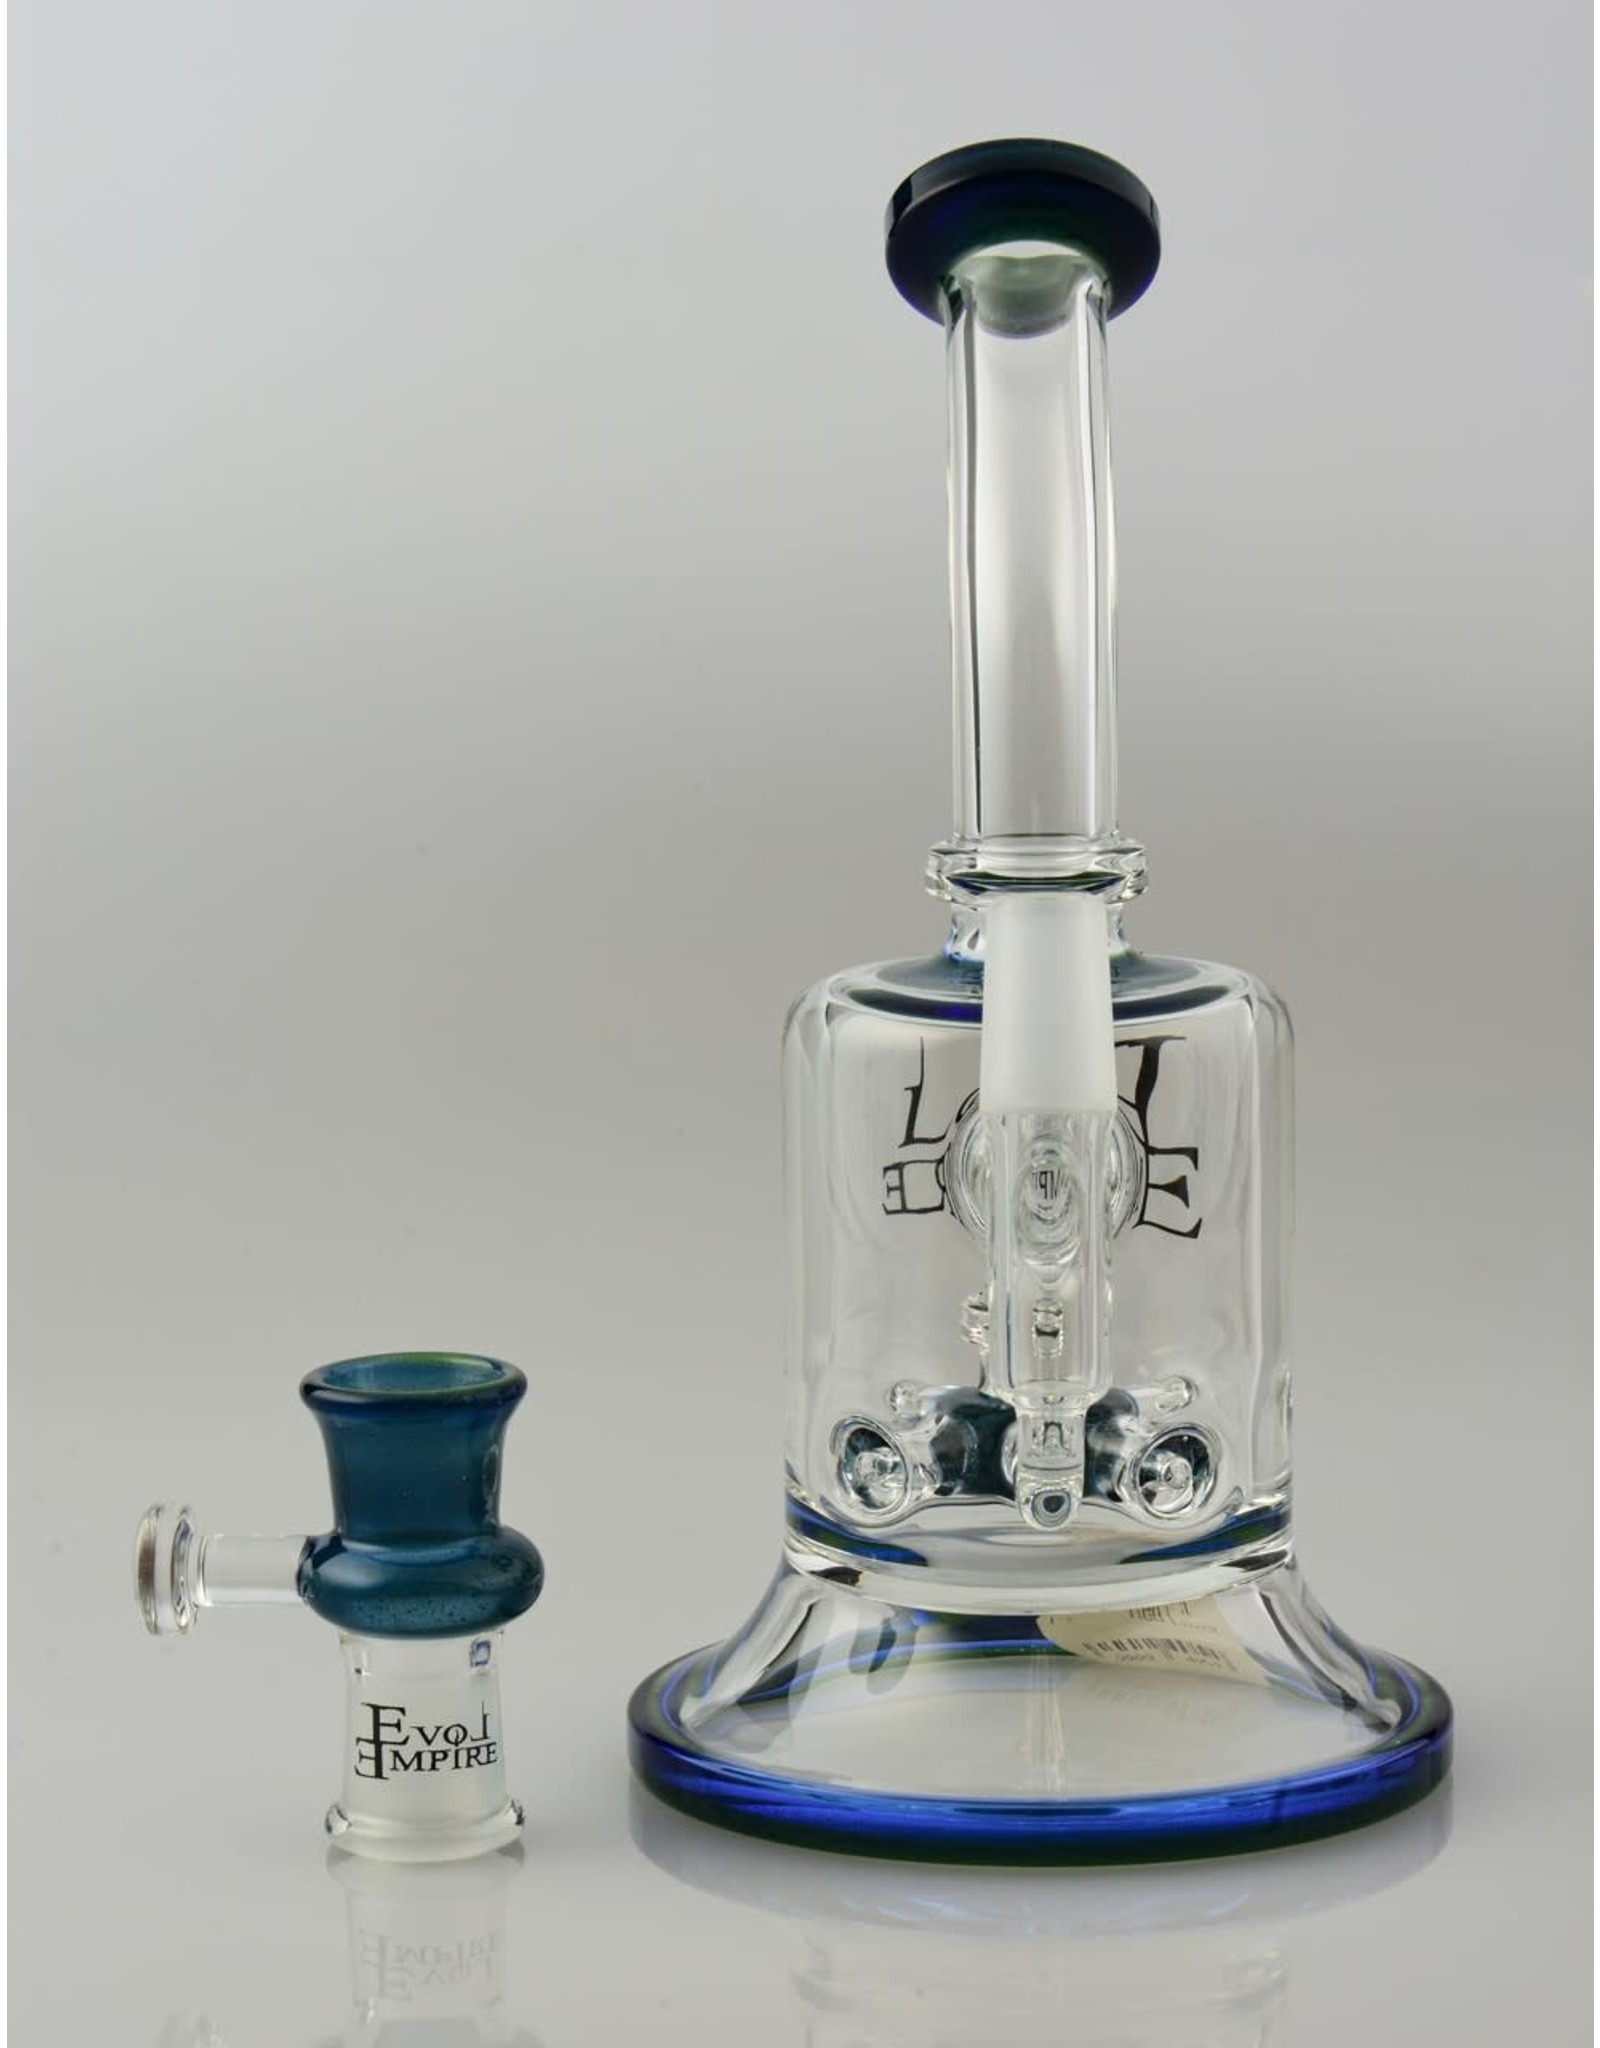 Evol Empire Evol Empire Mini 4 Point Perc With J-Red Lazer Color